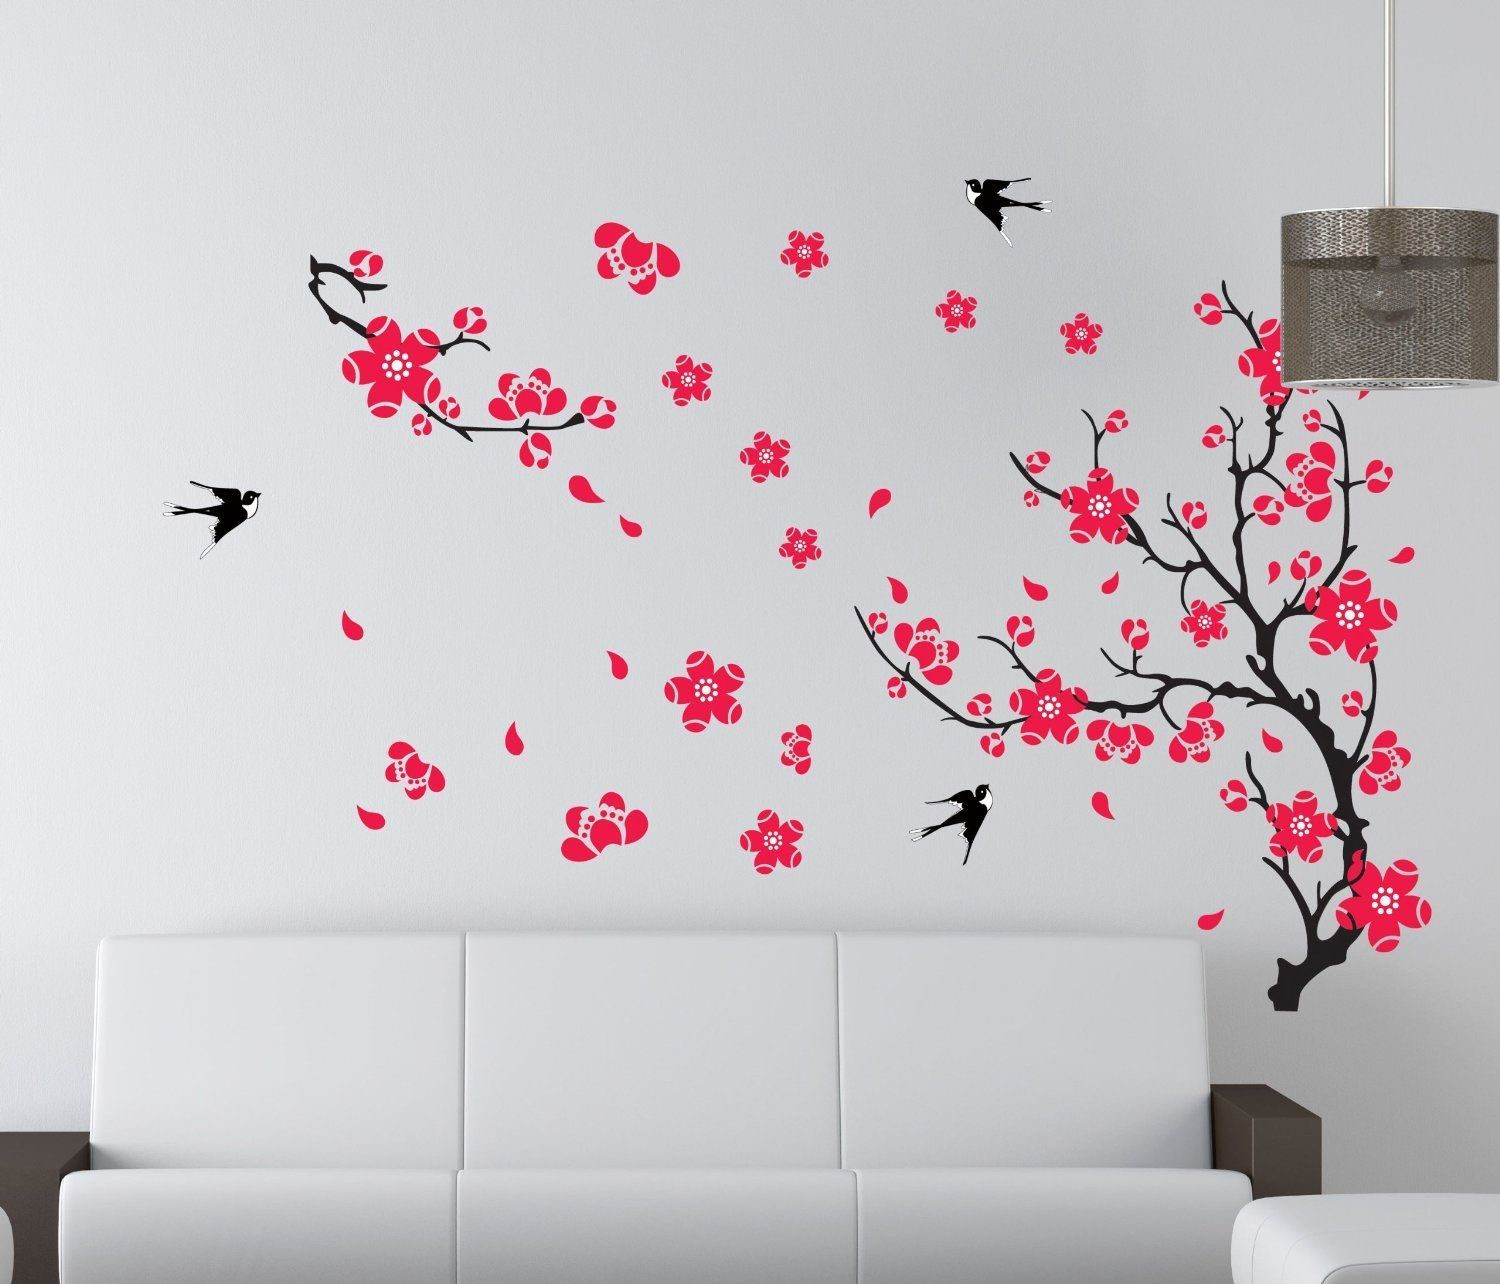 Delicieux US Room Peach Blossom Flower Butterfly Wall Sticker Vinyl Art Decals Decor  Mural